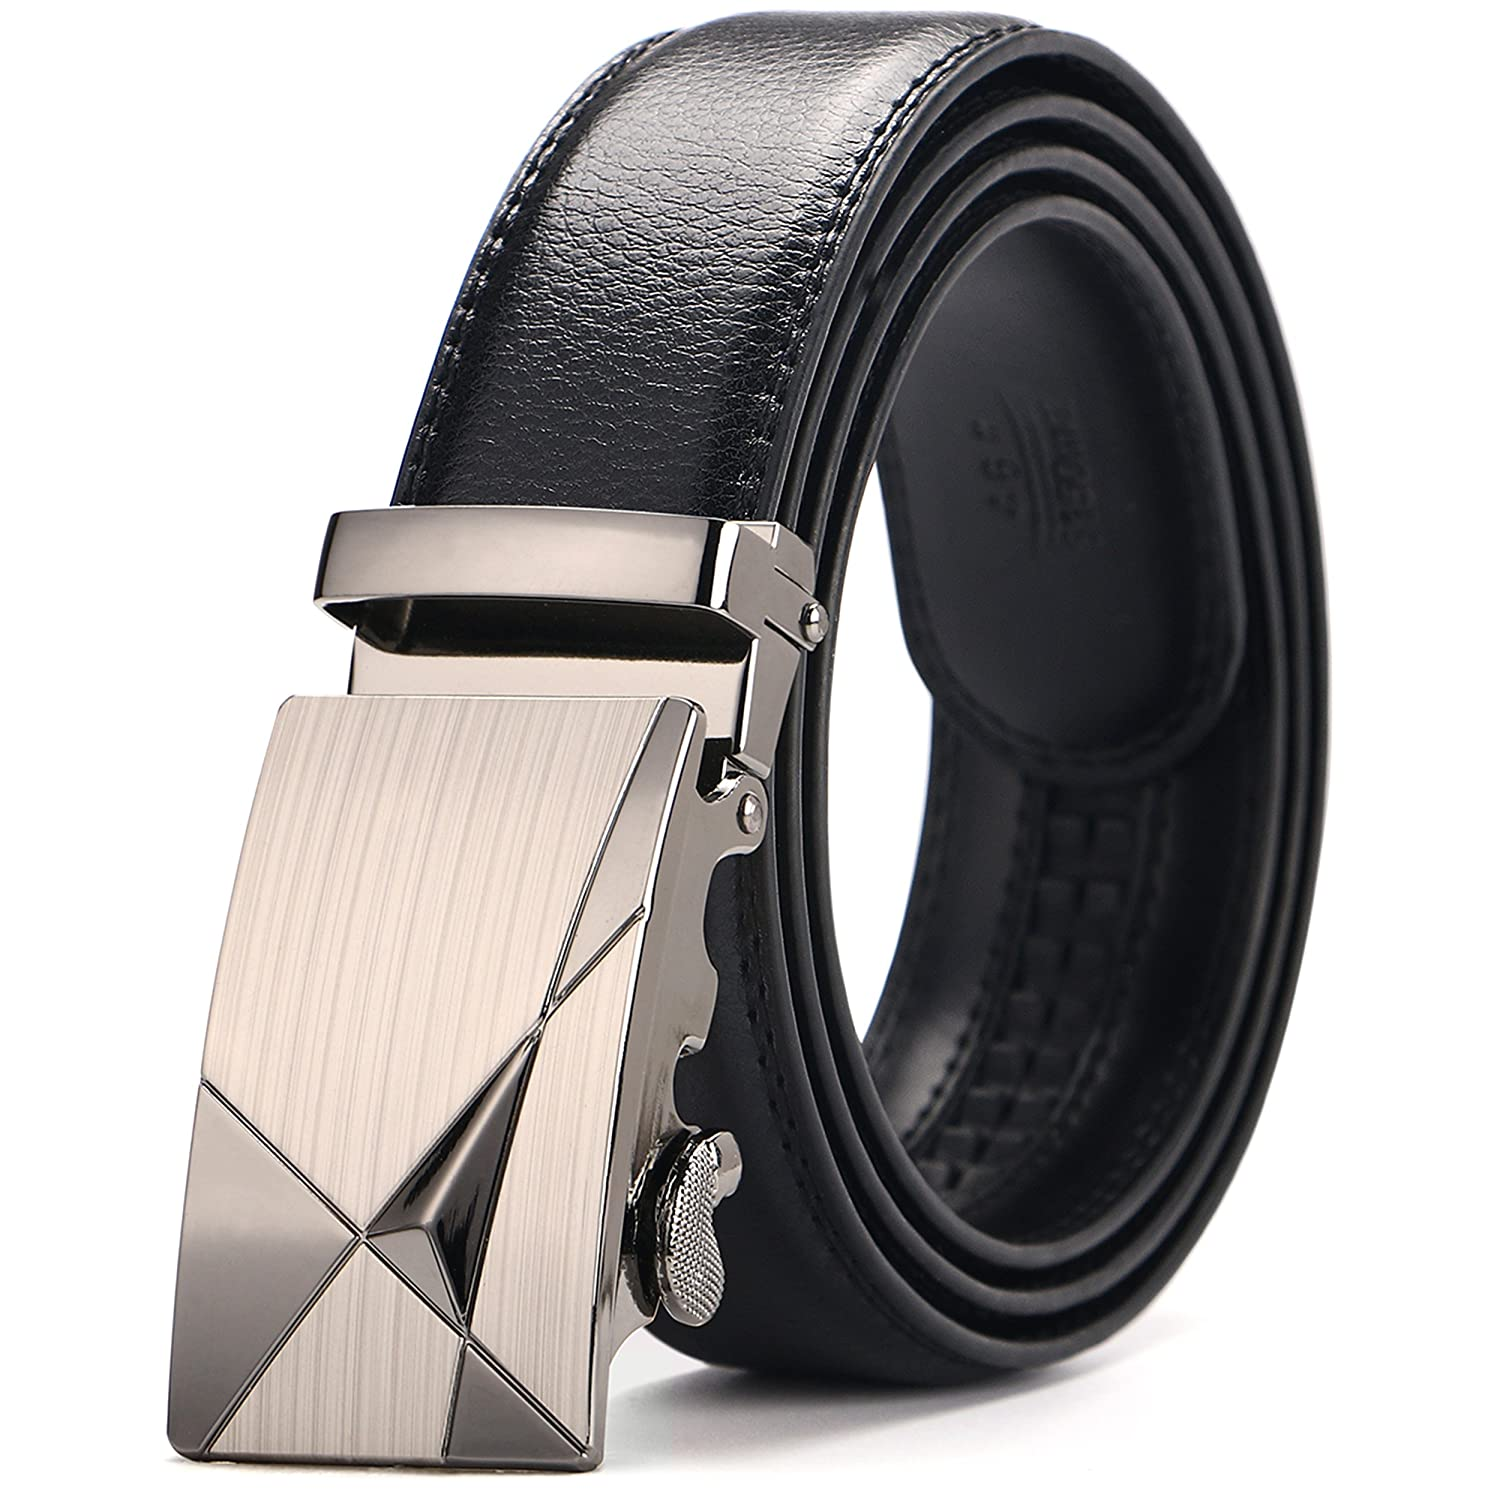 Men's Belts, Iztor Leather Ratchet Dress Belt with Automatic Buckle 1 1/8 Wider for from 20 to 43 Waist Men' s Belts BT1661